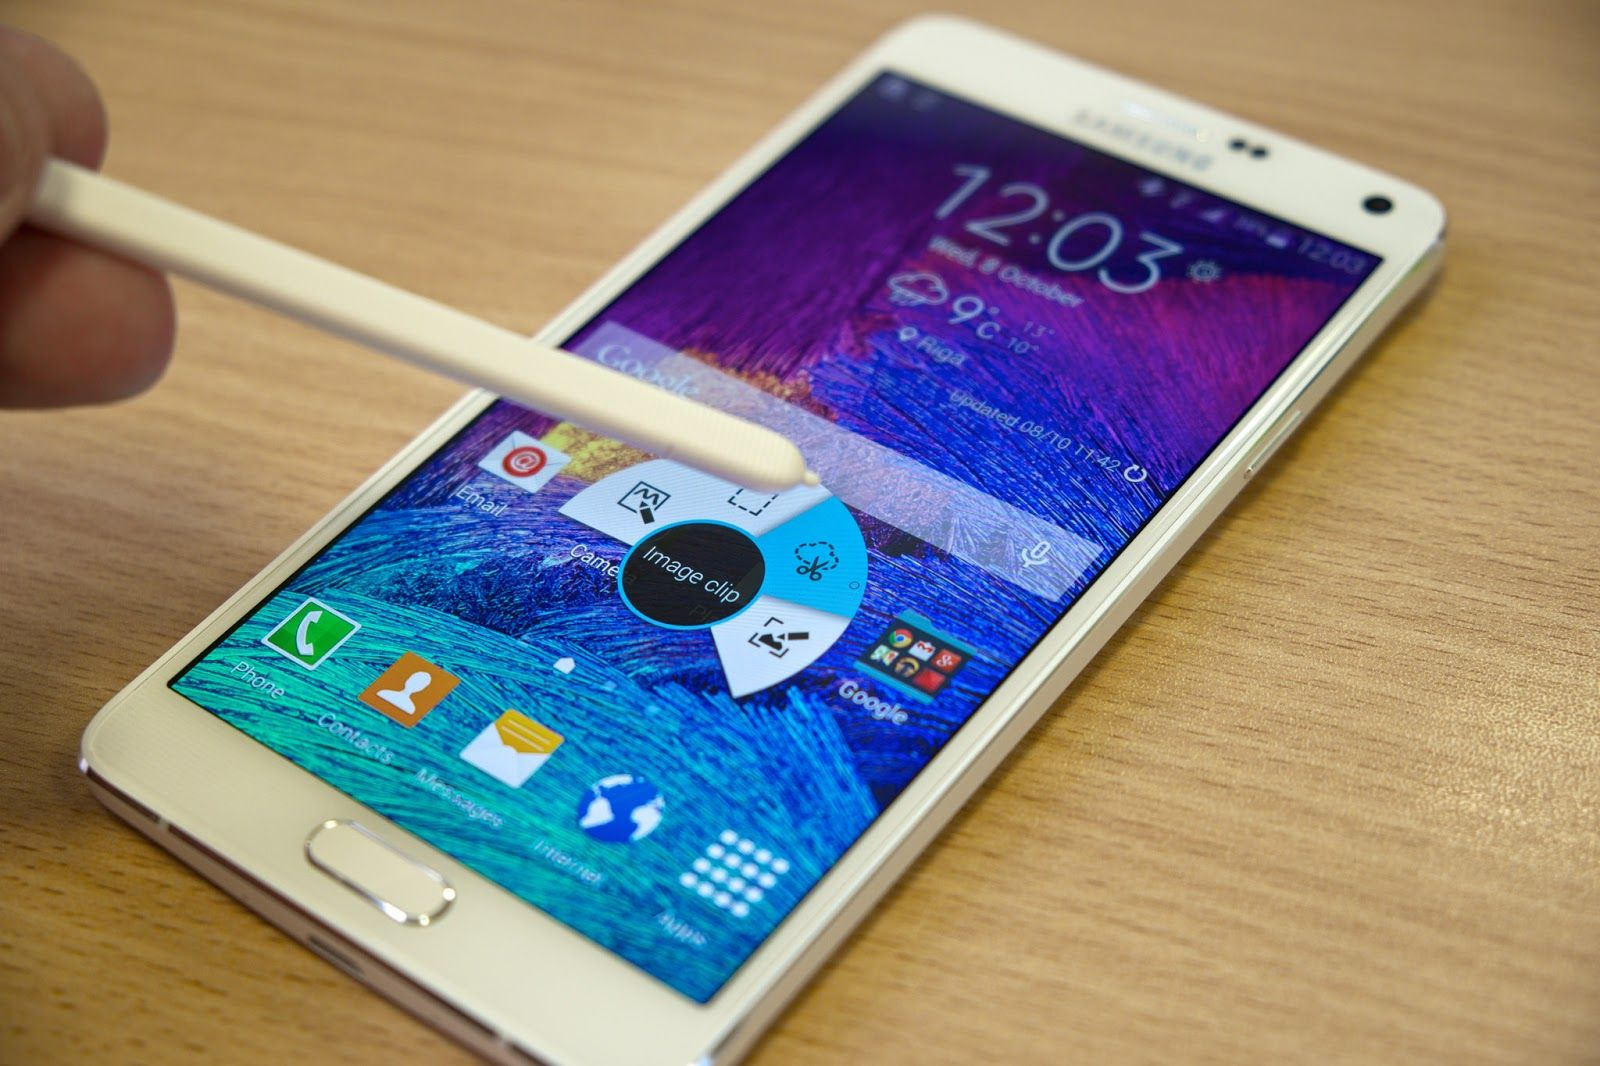 Note 4 Fingerprint Scanner Not Working: What to Do